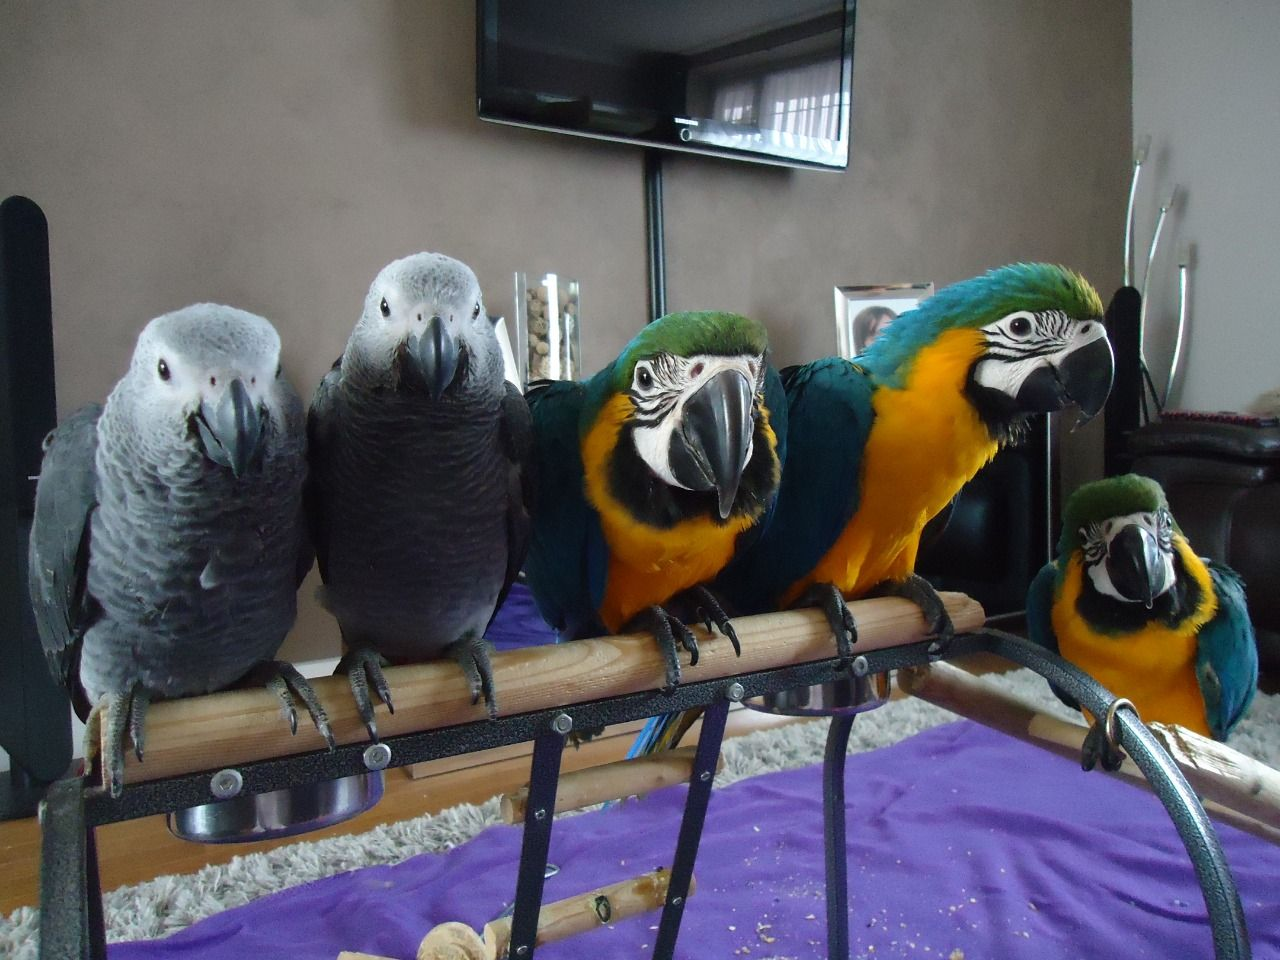 Iran Birds For Sale classifieds  Buy and Sell, Browse or Post Ads